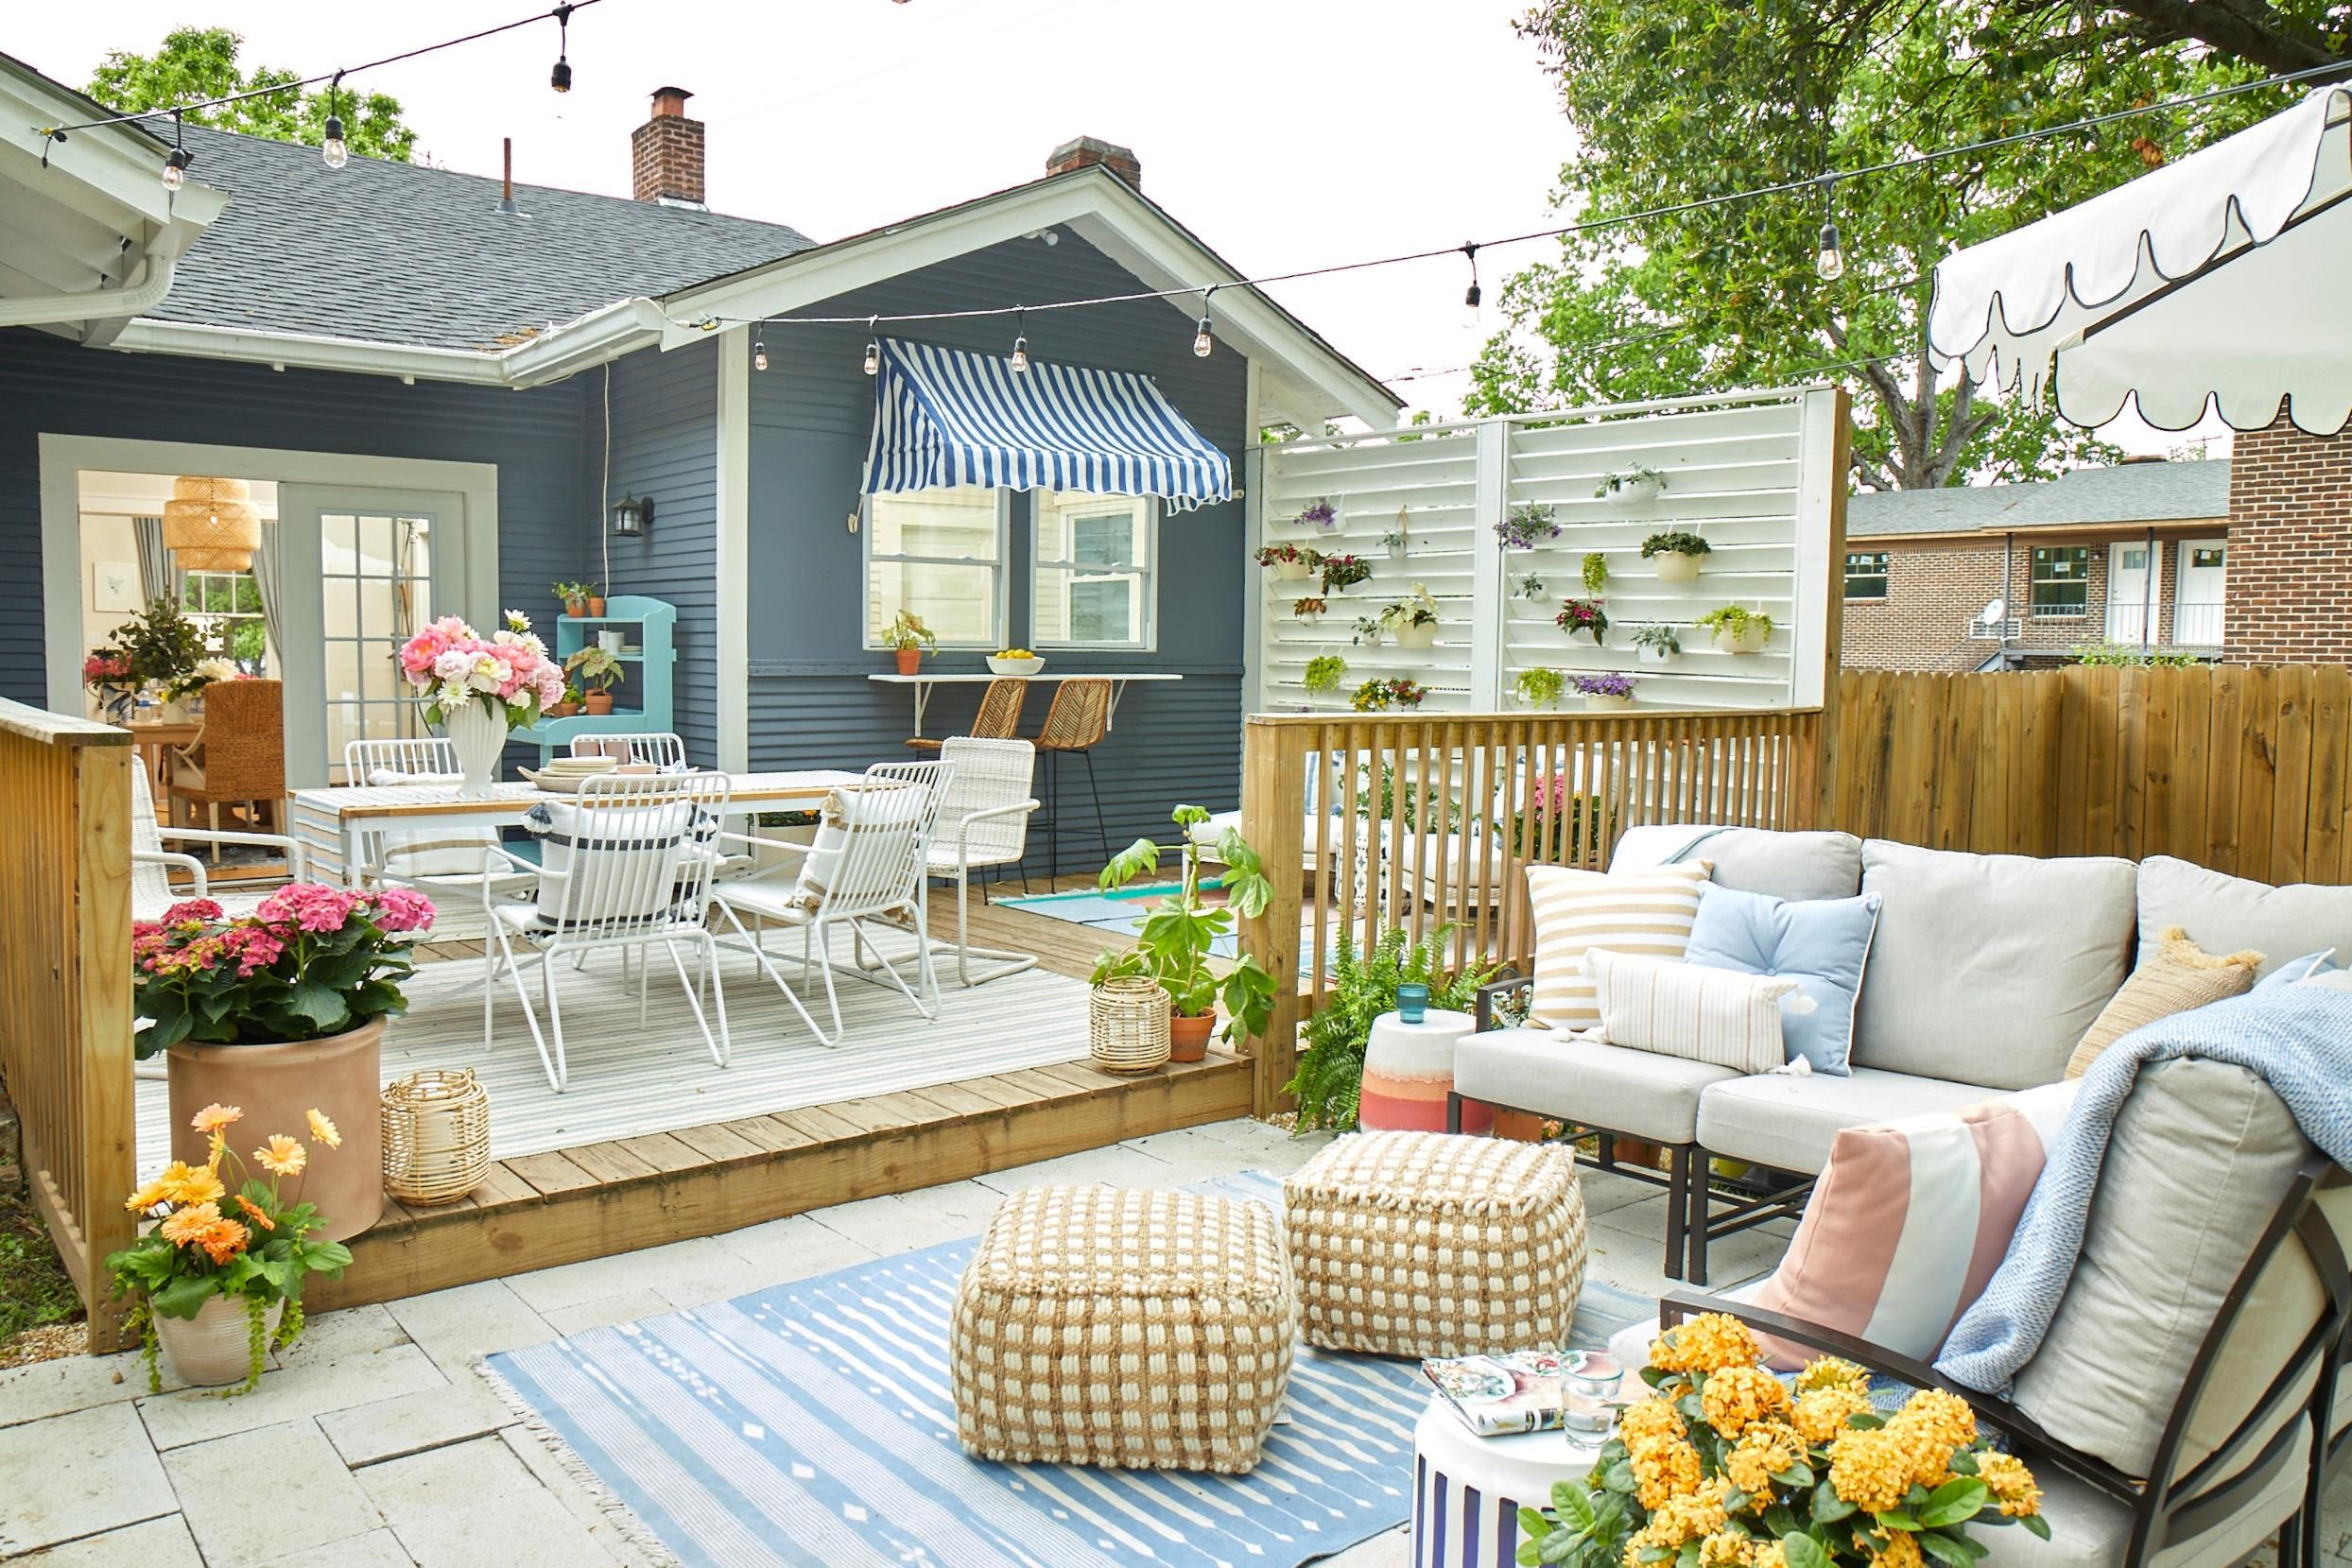 4 essential must haves for a backyard   makeover